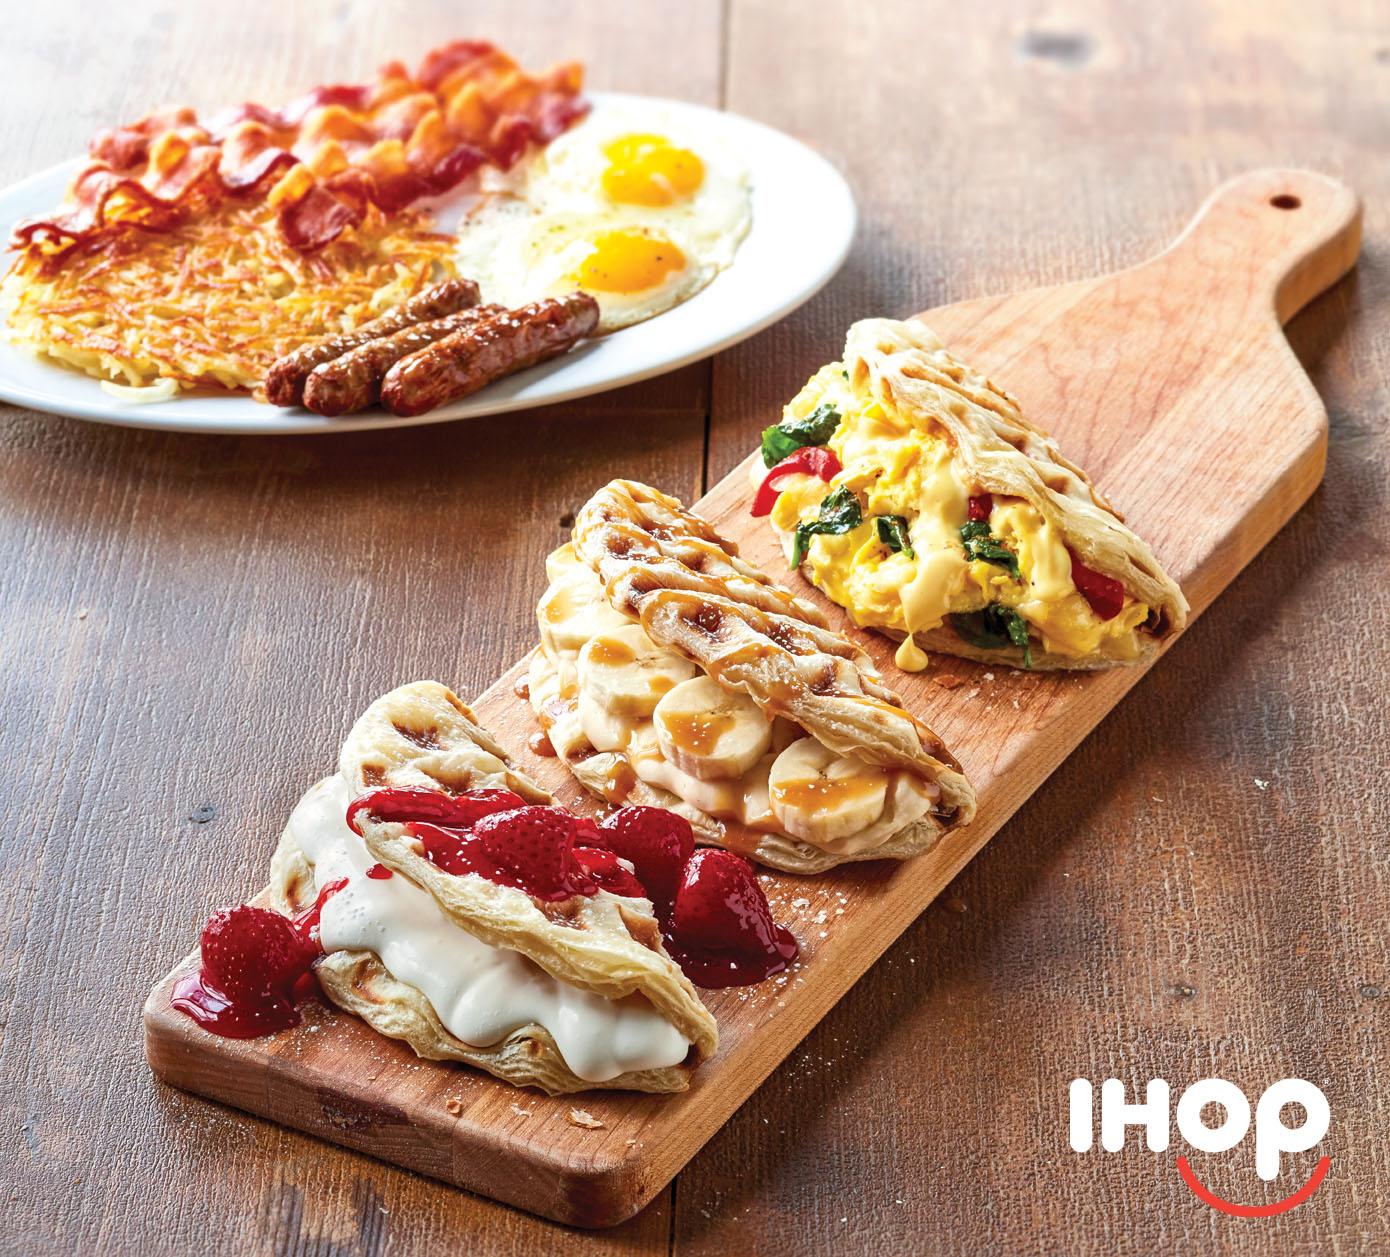 The innovative IHOP dish that revolutionized breakfast is back with three new delicious flavor combinations.